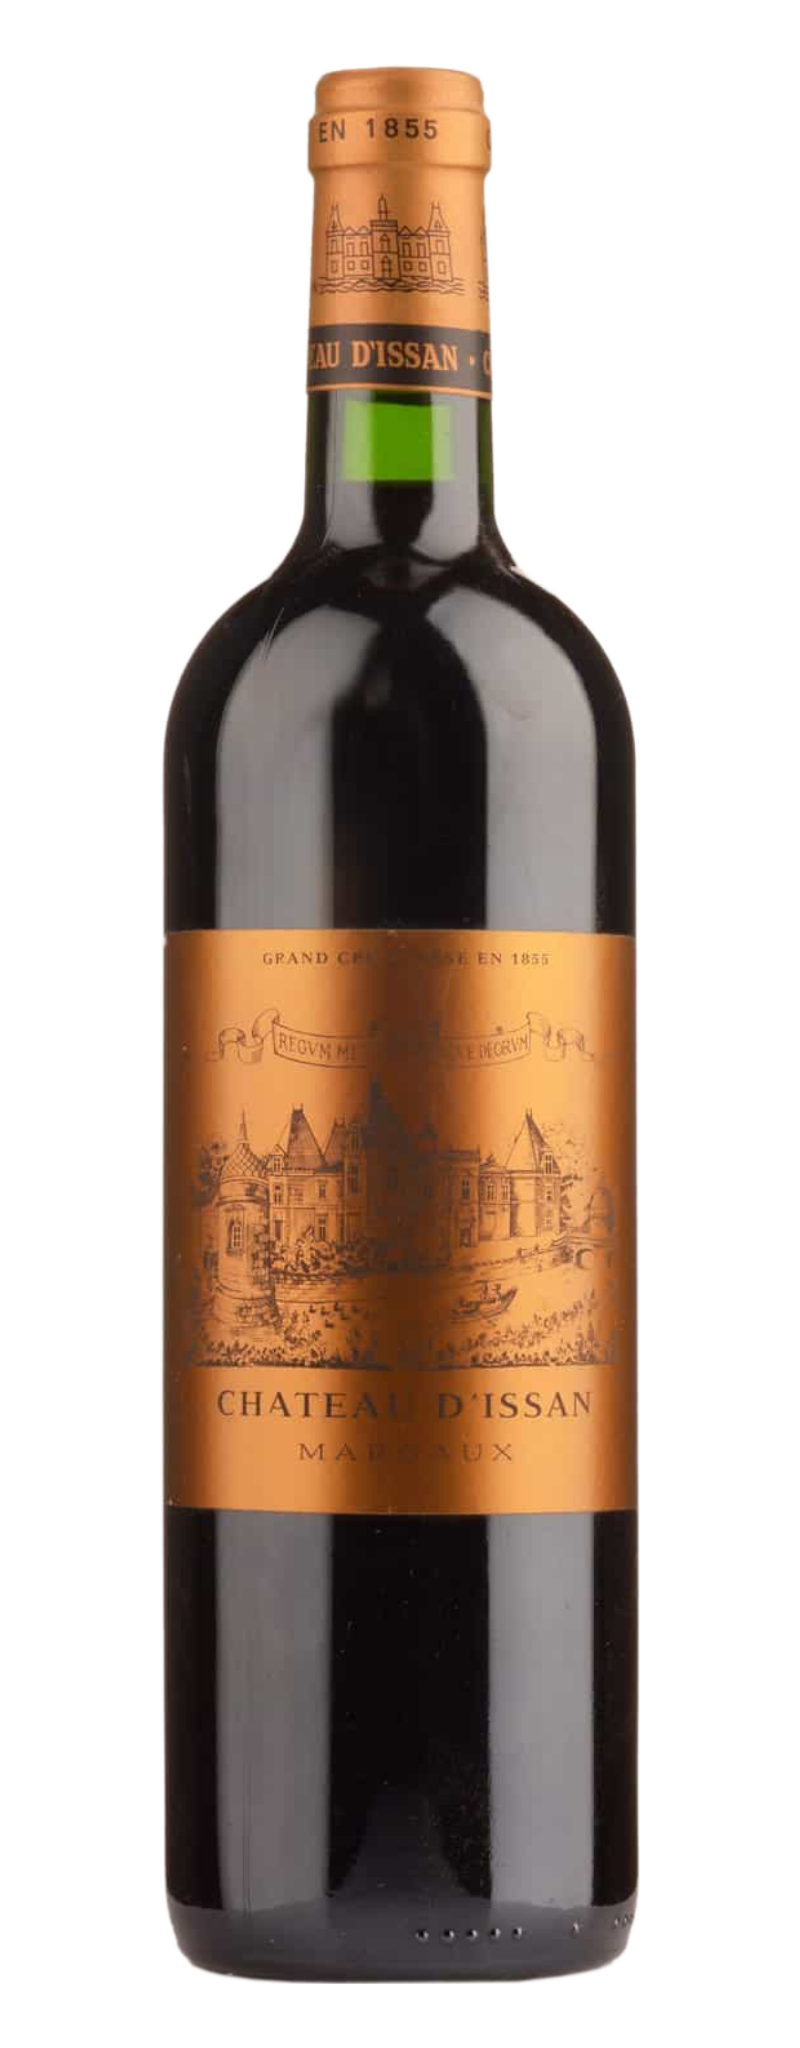 Chateau d'Issan 2014  - 750ml